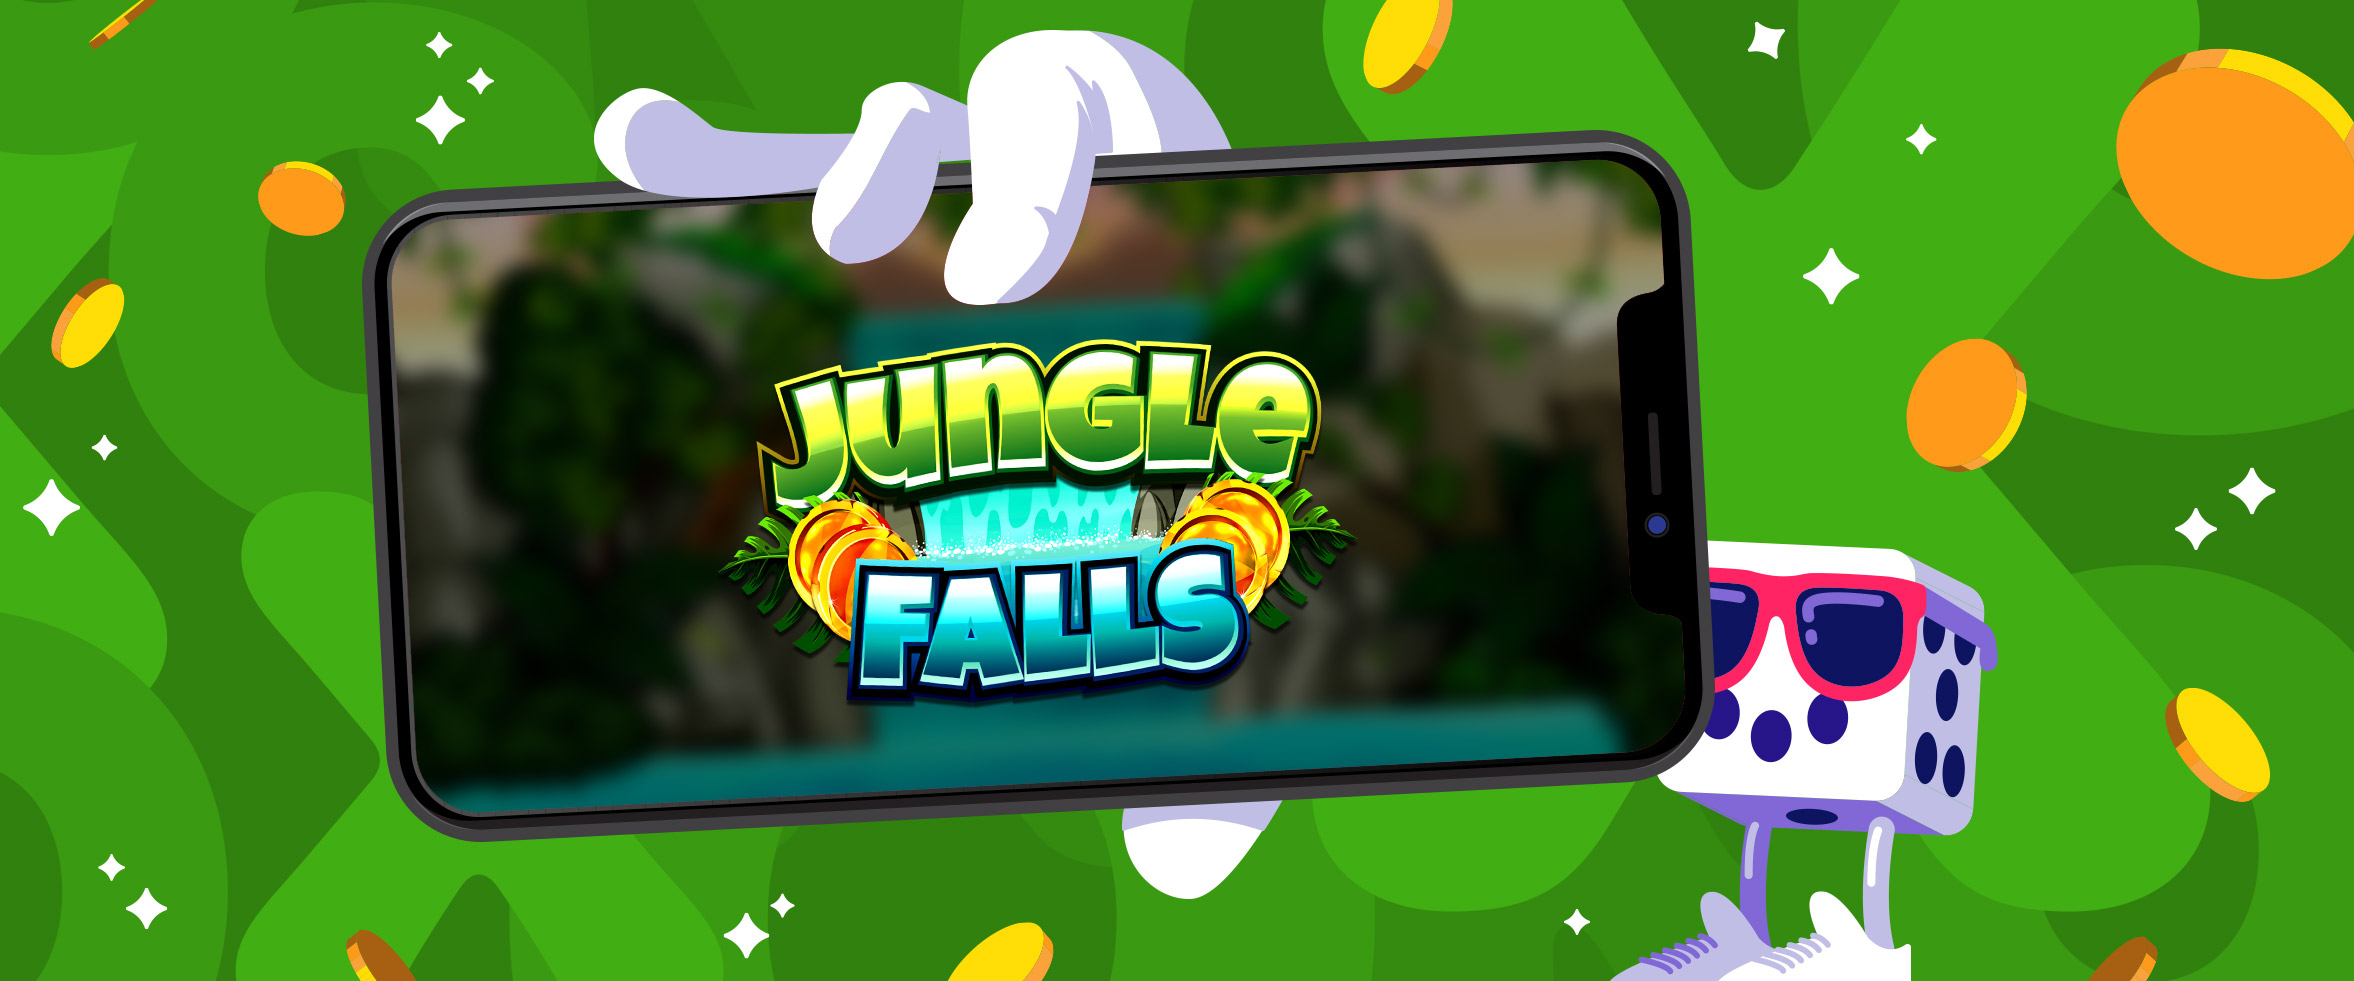 Play Exclusive New Game Jungle Falls With Double Speed